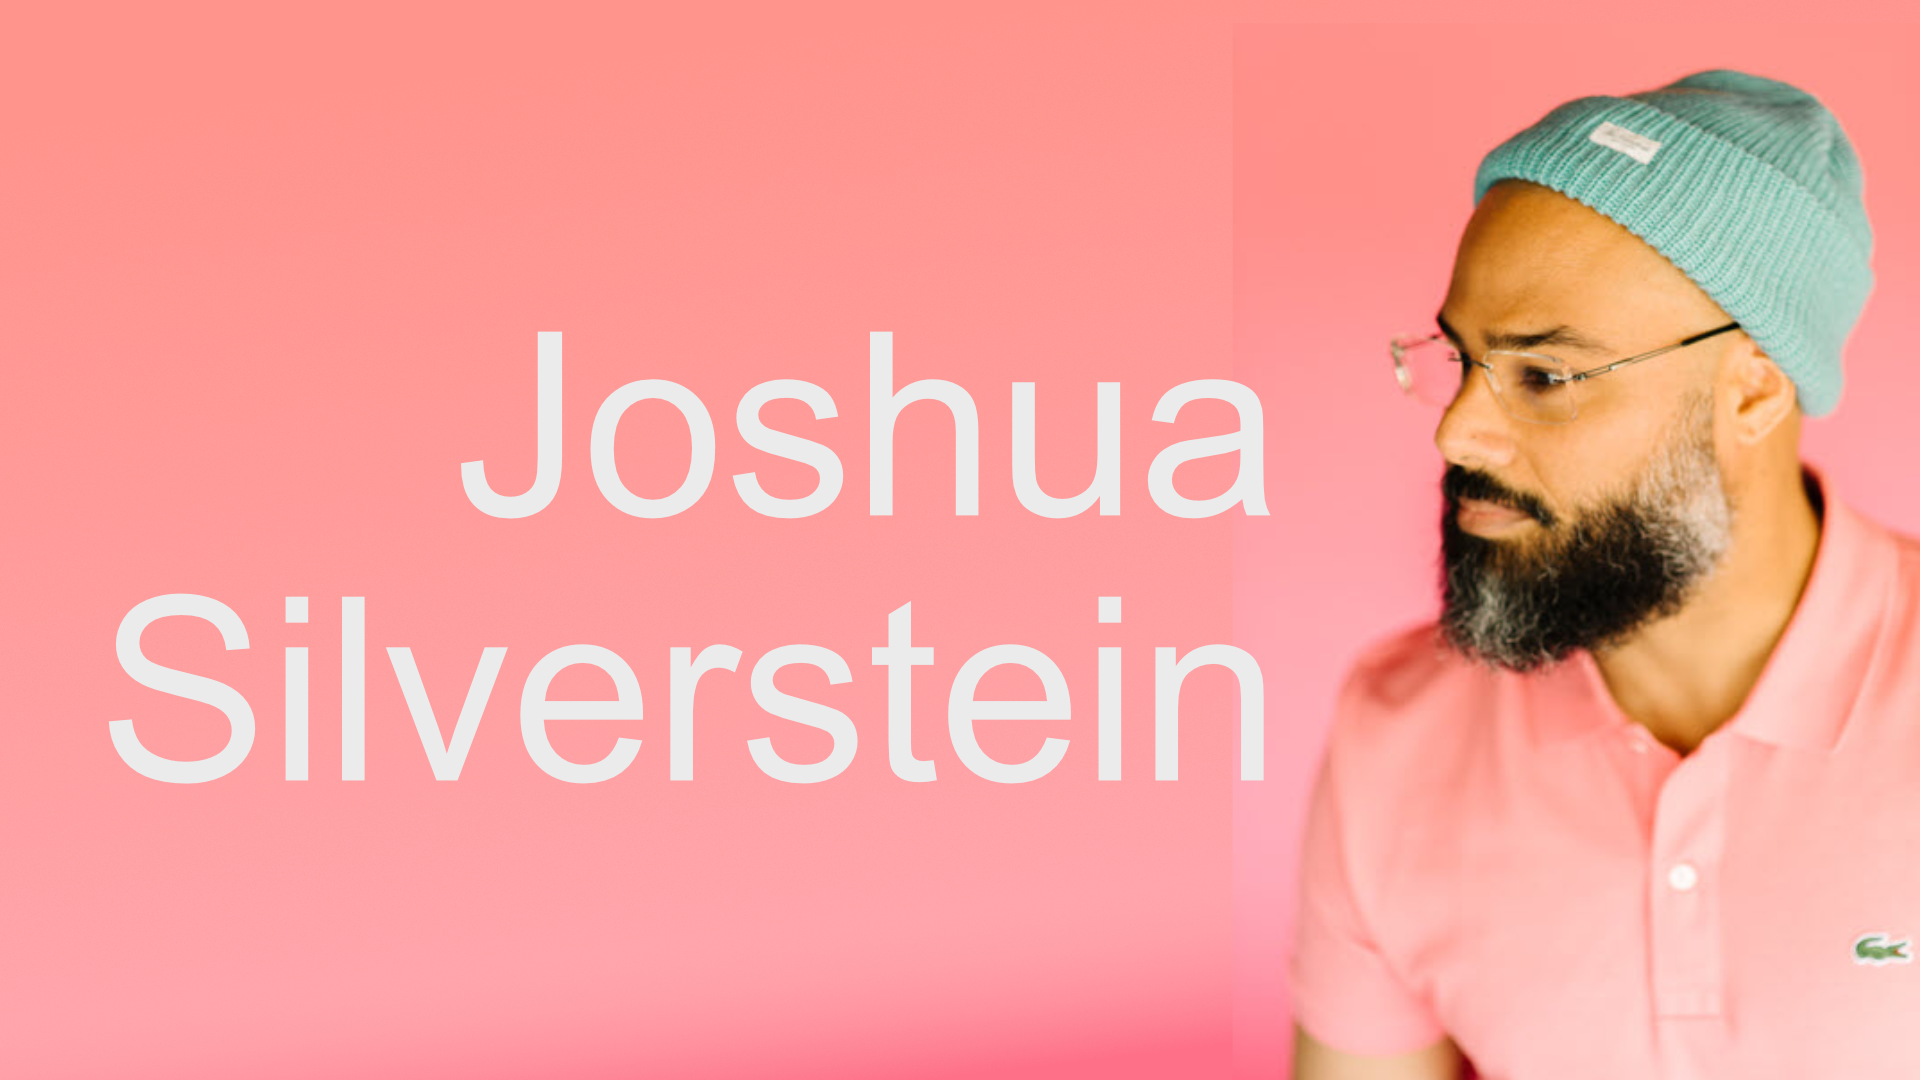 Picture of Joshua Silverstein. Man with beard wearing a pink hat and shirt.